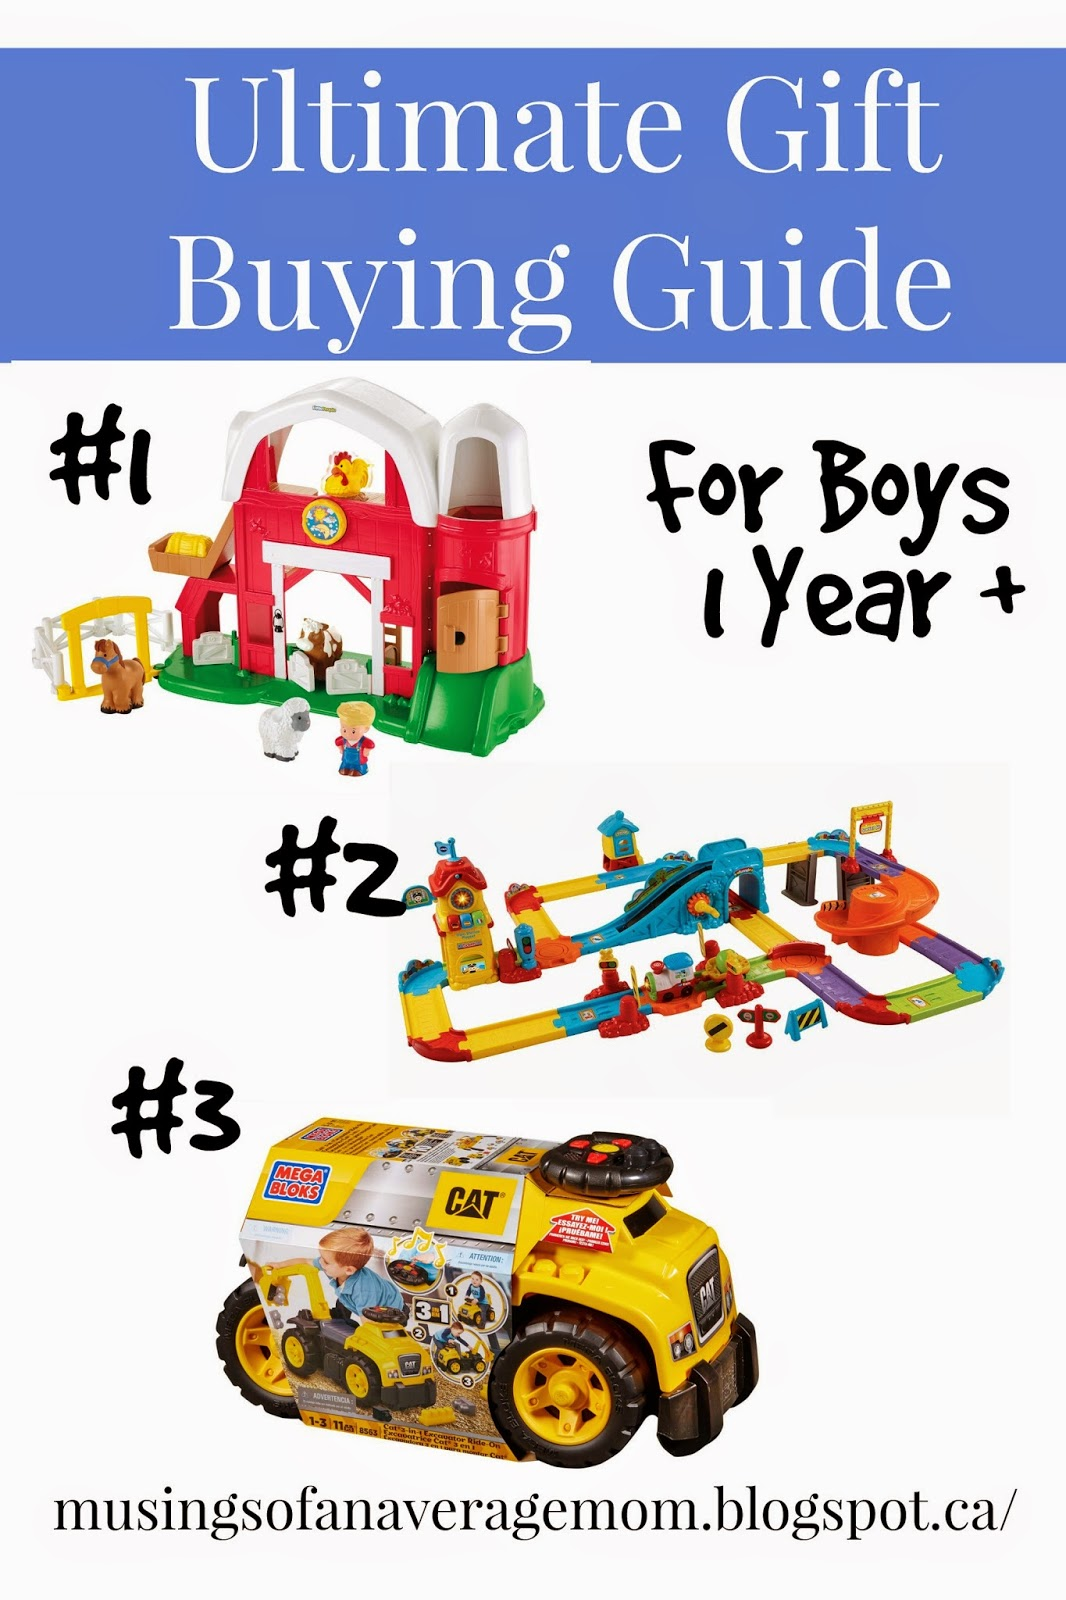 Buying Guide For Boys Toys : Musings of an average mom ultimate gift buying guide one